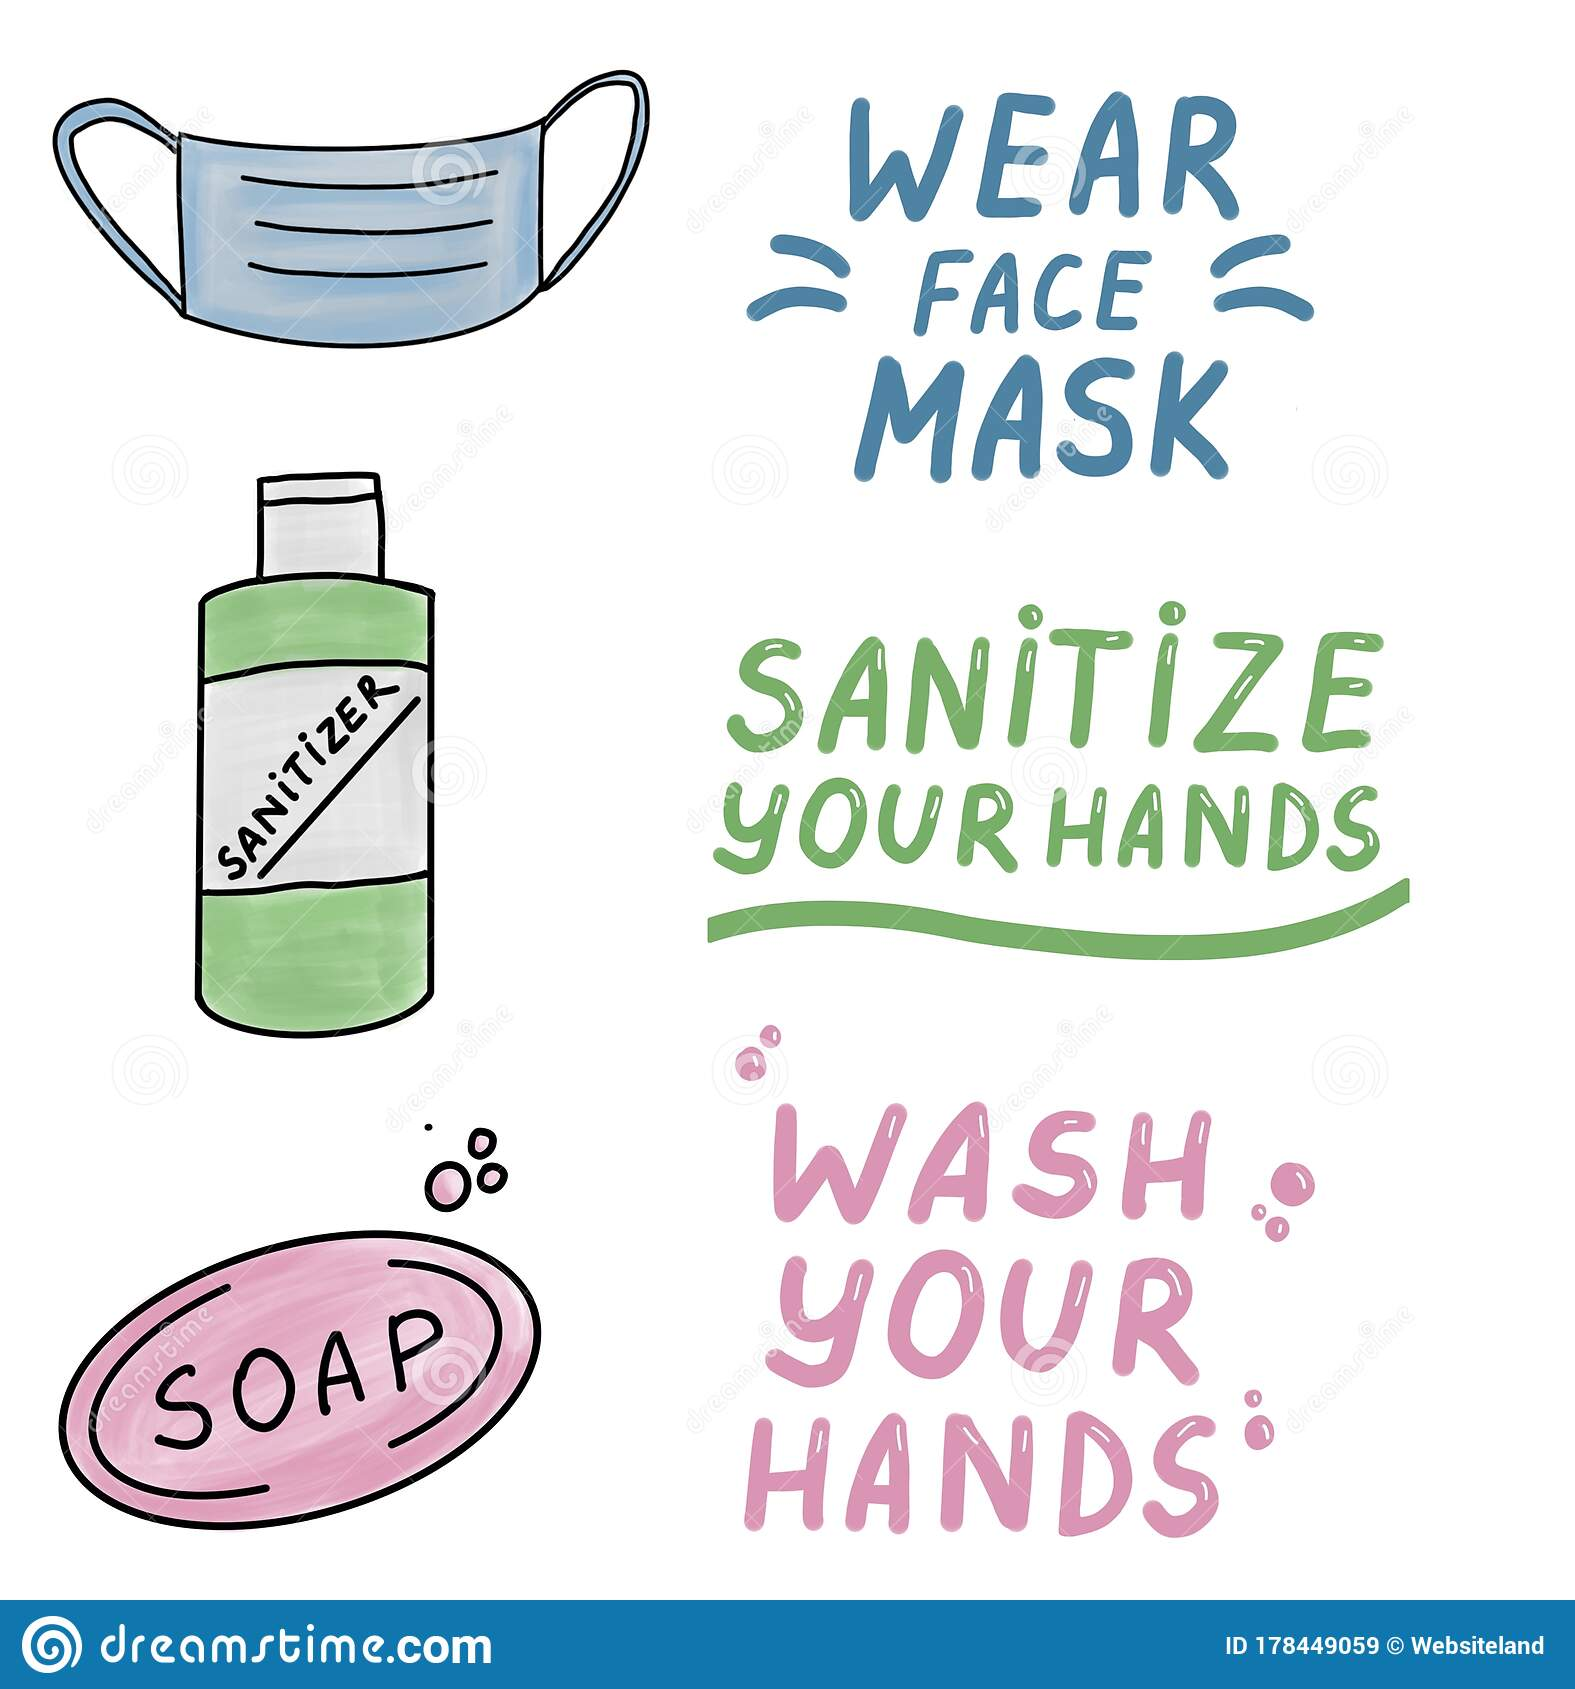 Wear A Face Mask Wash Your Hands Sanitize Your Hands